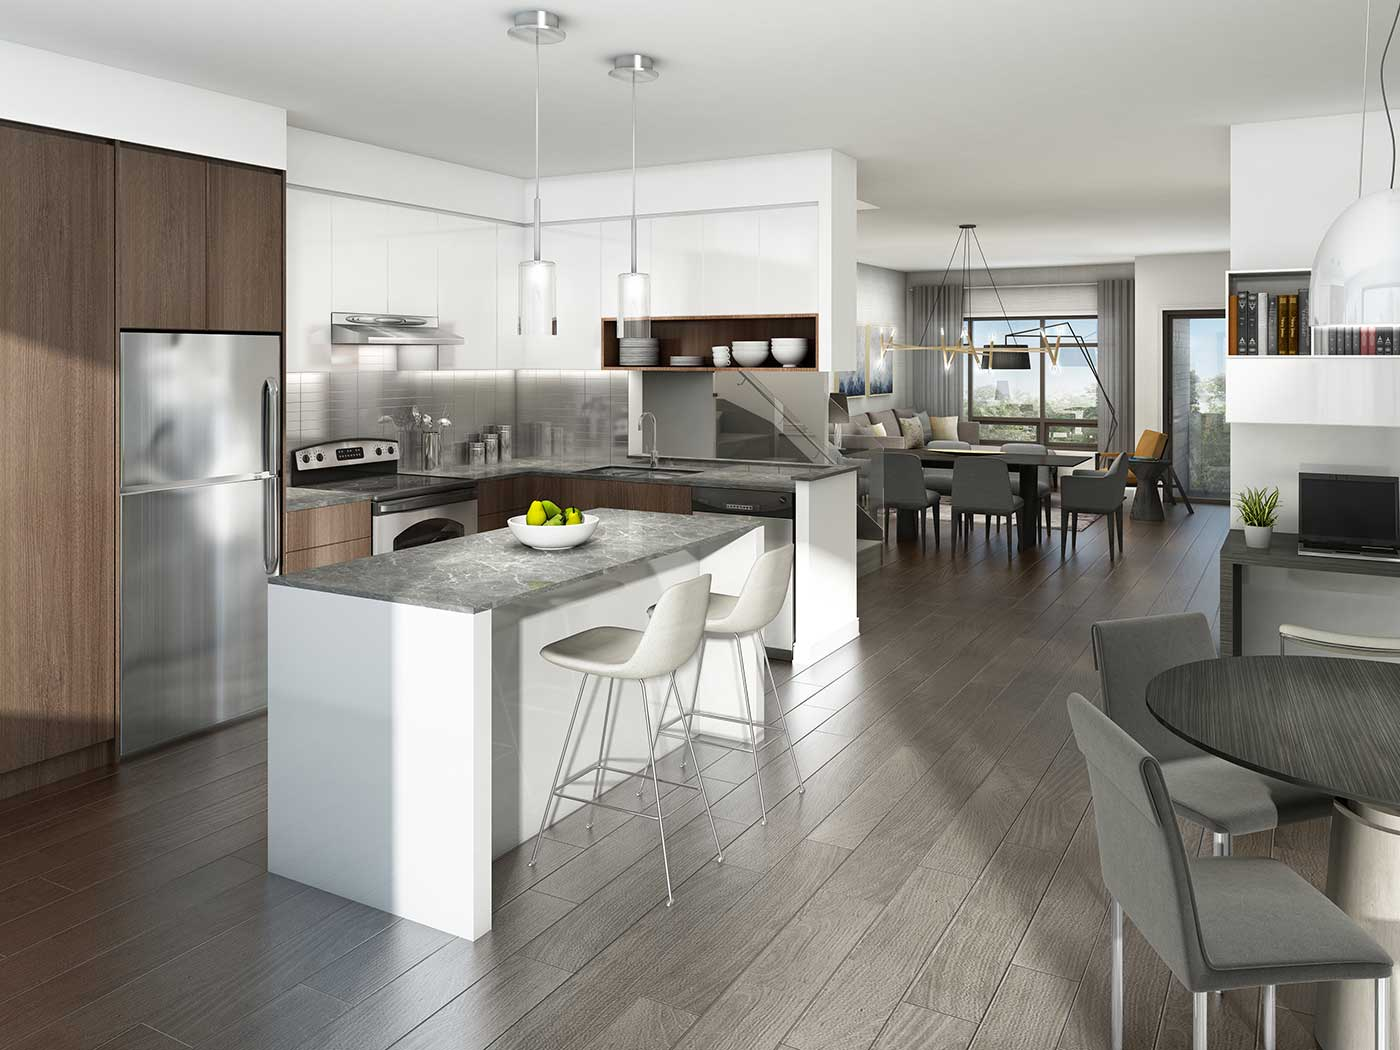 burlington-townhomes-station-west-condos-london-collection-kitchen-appliances.jpg